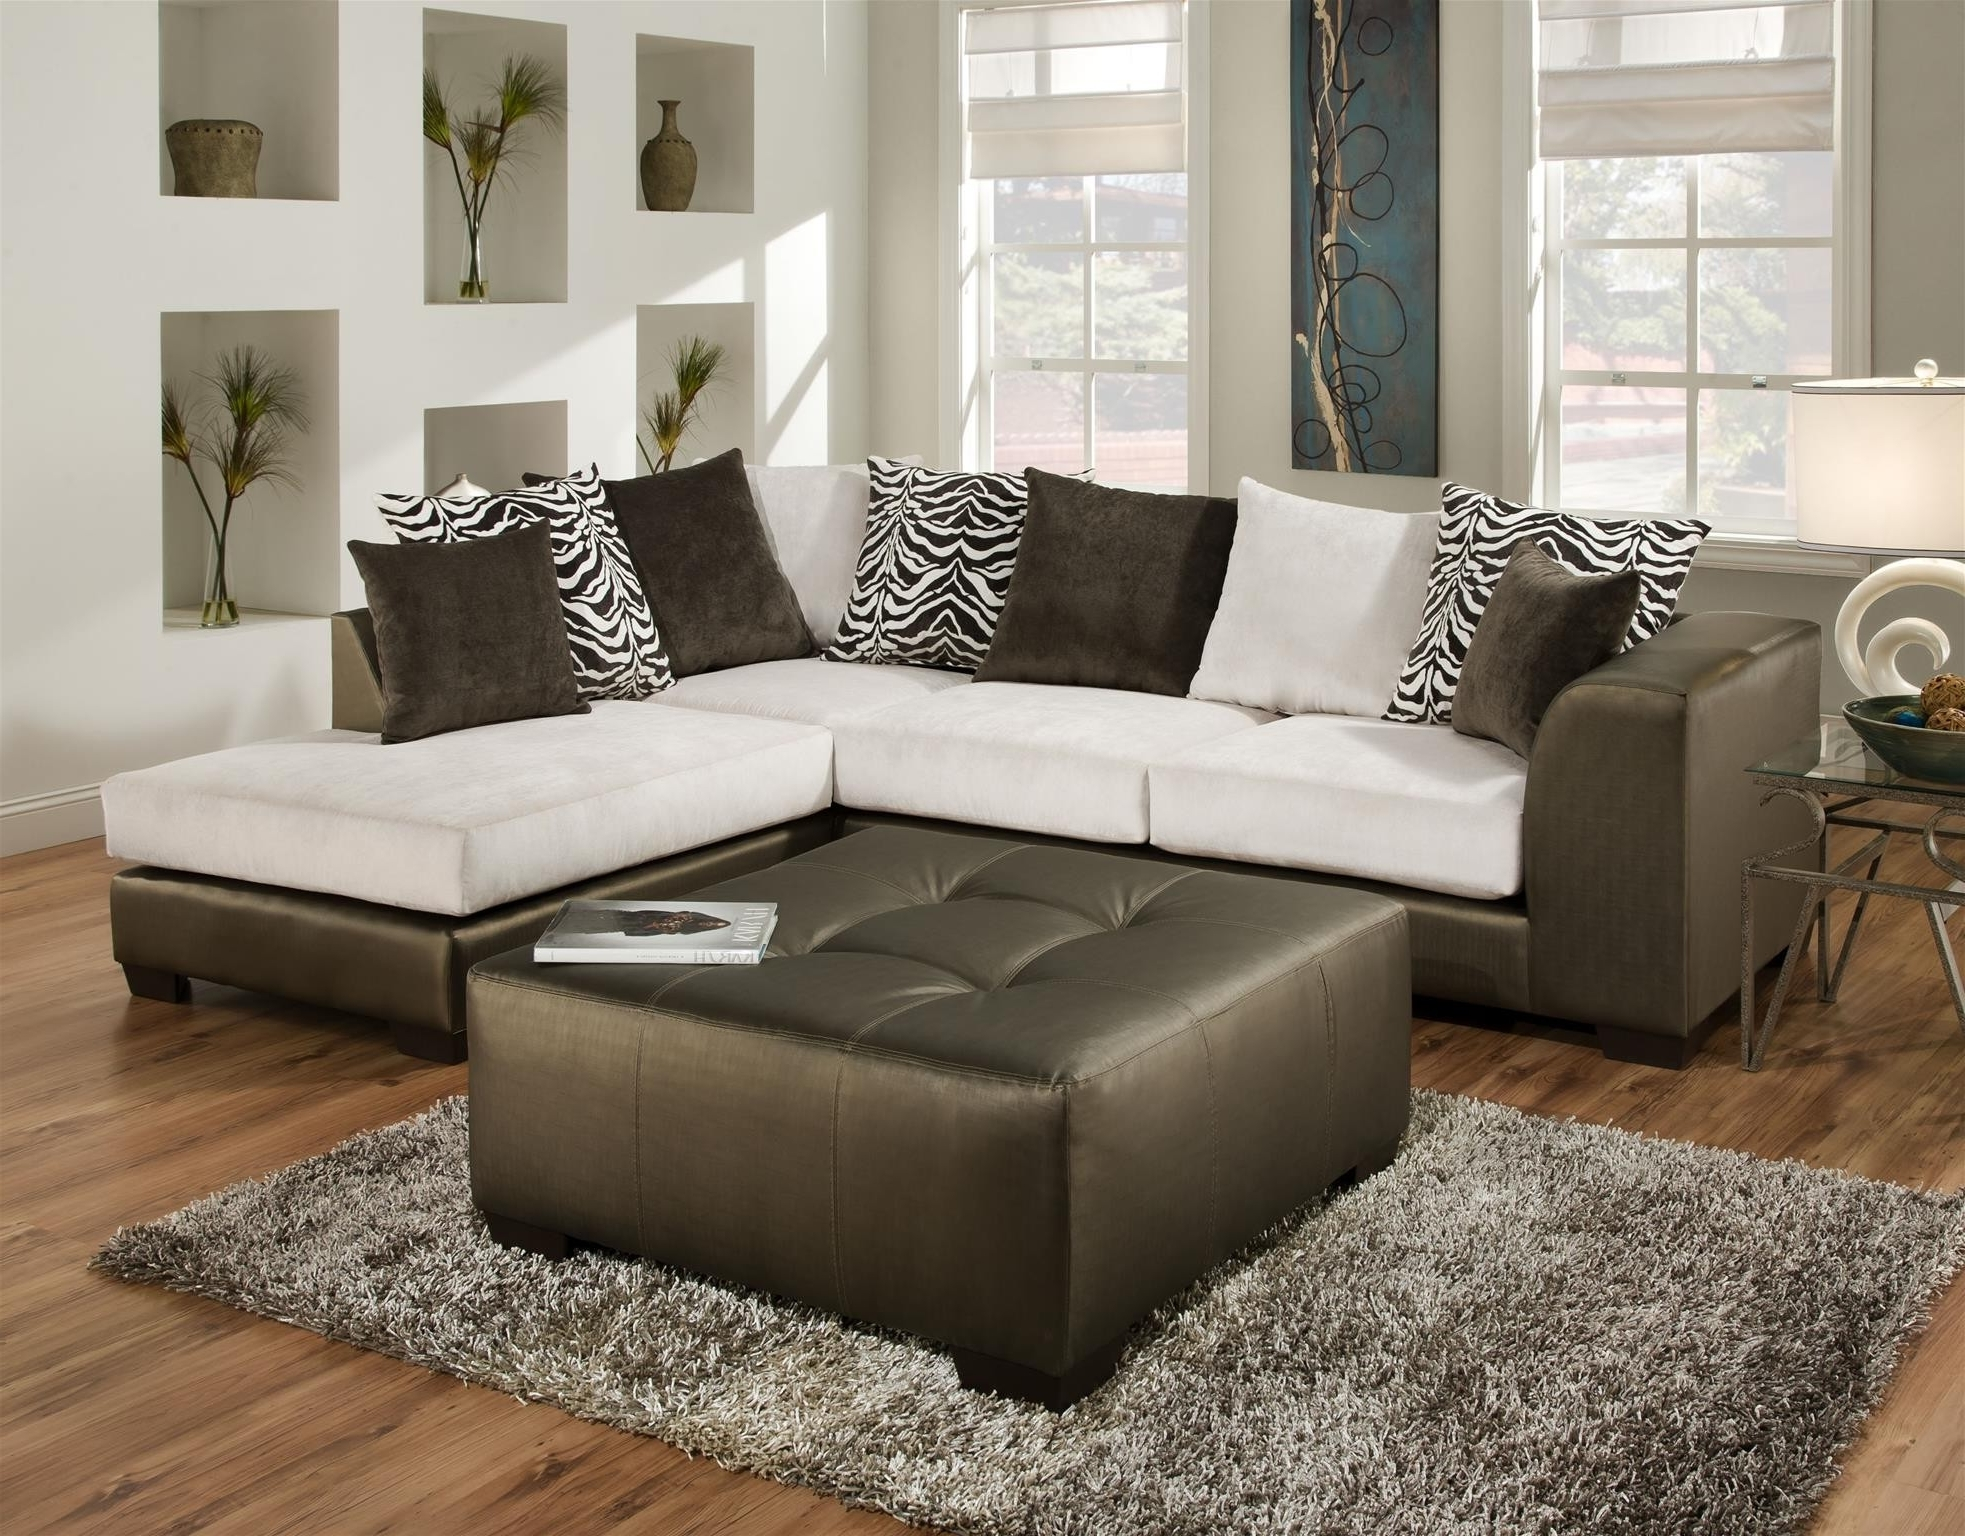 New Sectional Sofa Tampa – Buildsimplehome Within Latest Tampa Sectional Sofas (Gallery 5 of 20)